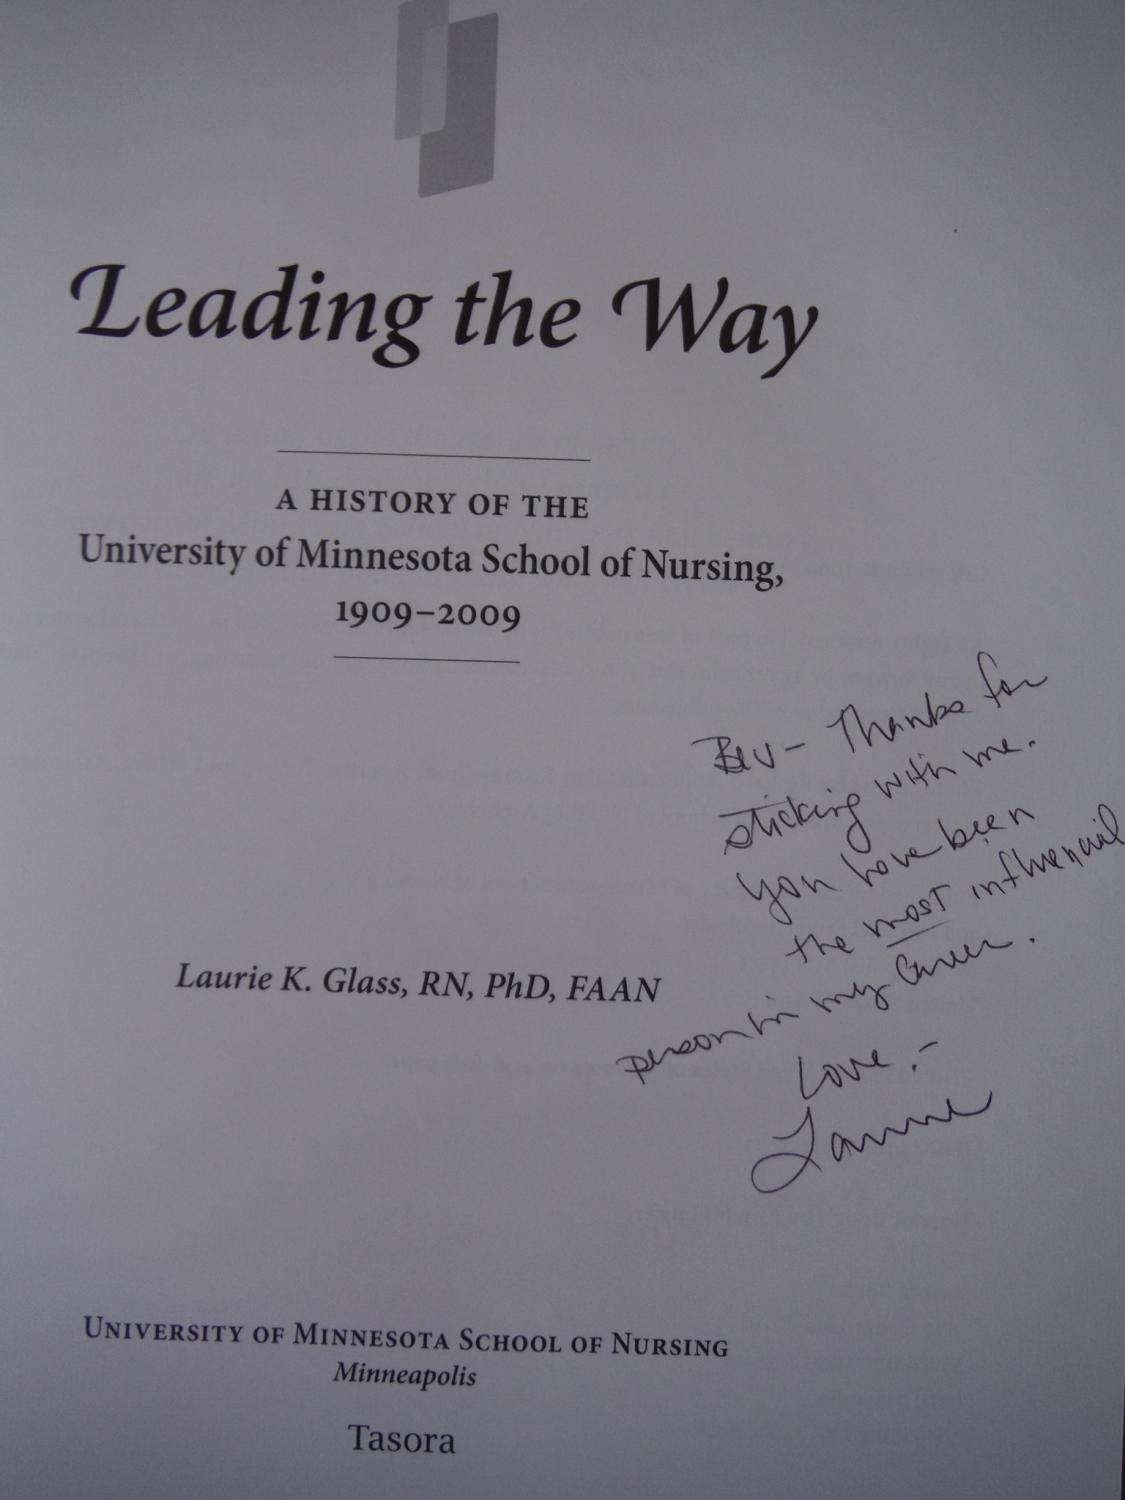 Leading the Way - The University of